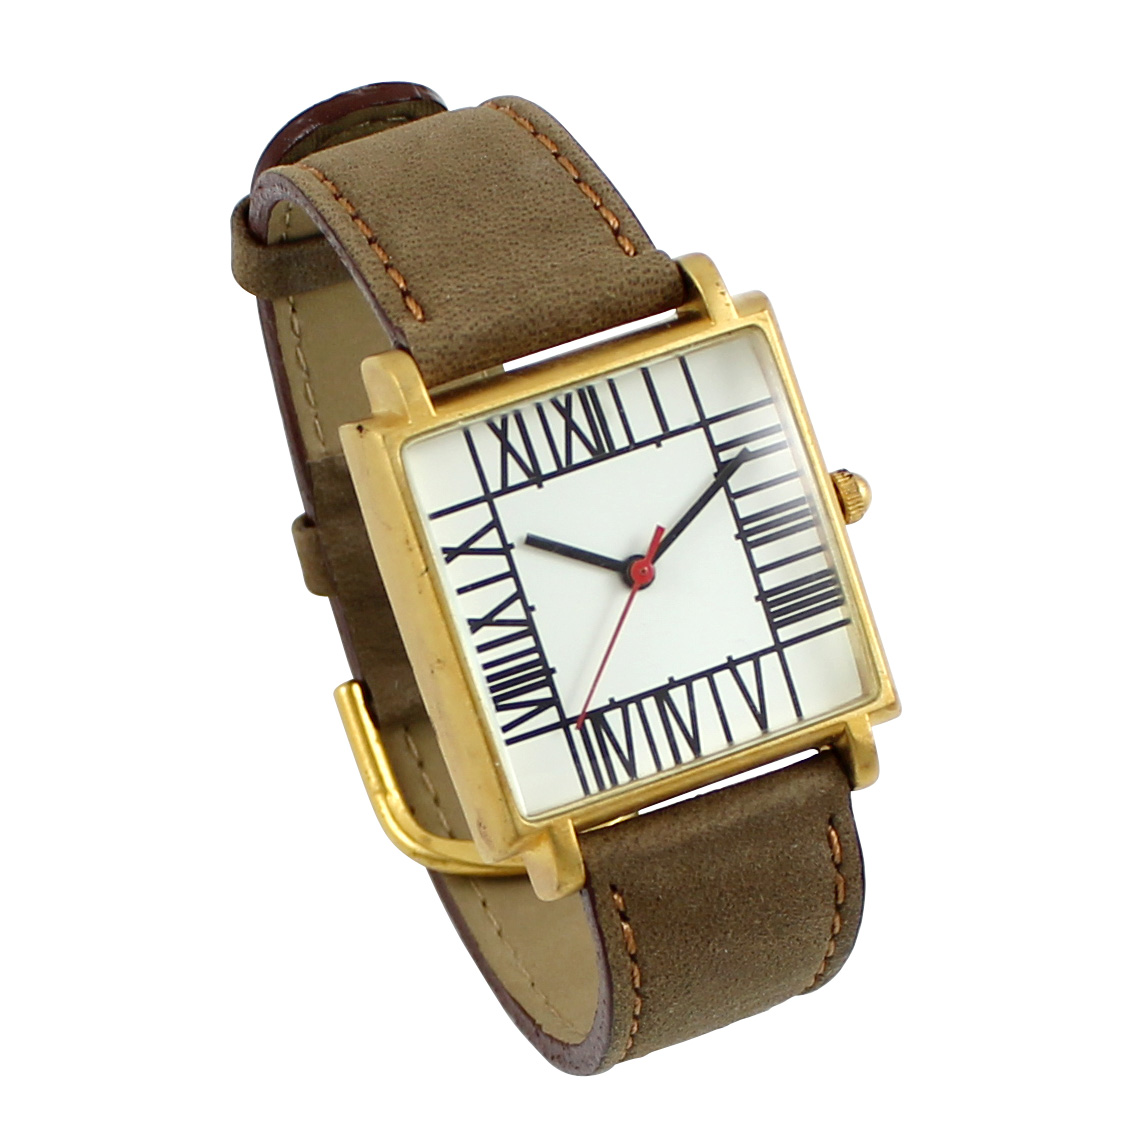 Charles Rennie Mackintosh MACKINTOSH I Wrist Watch accessories watches ...